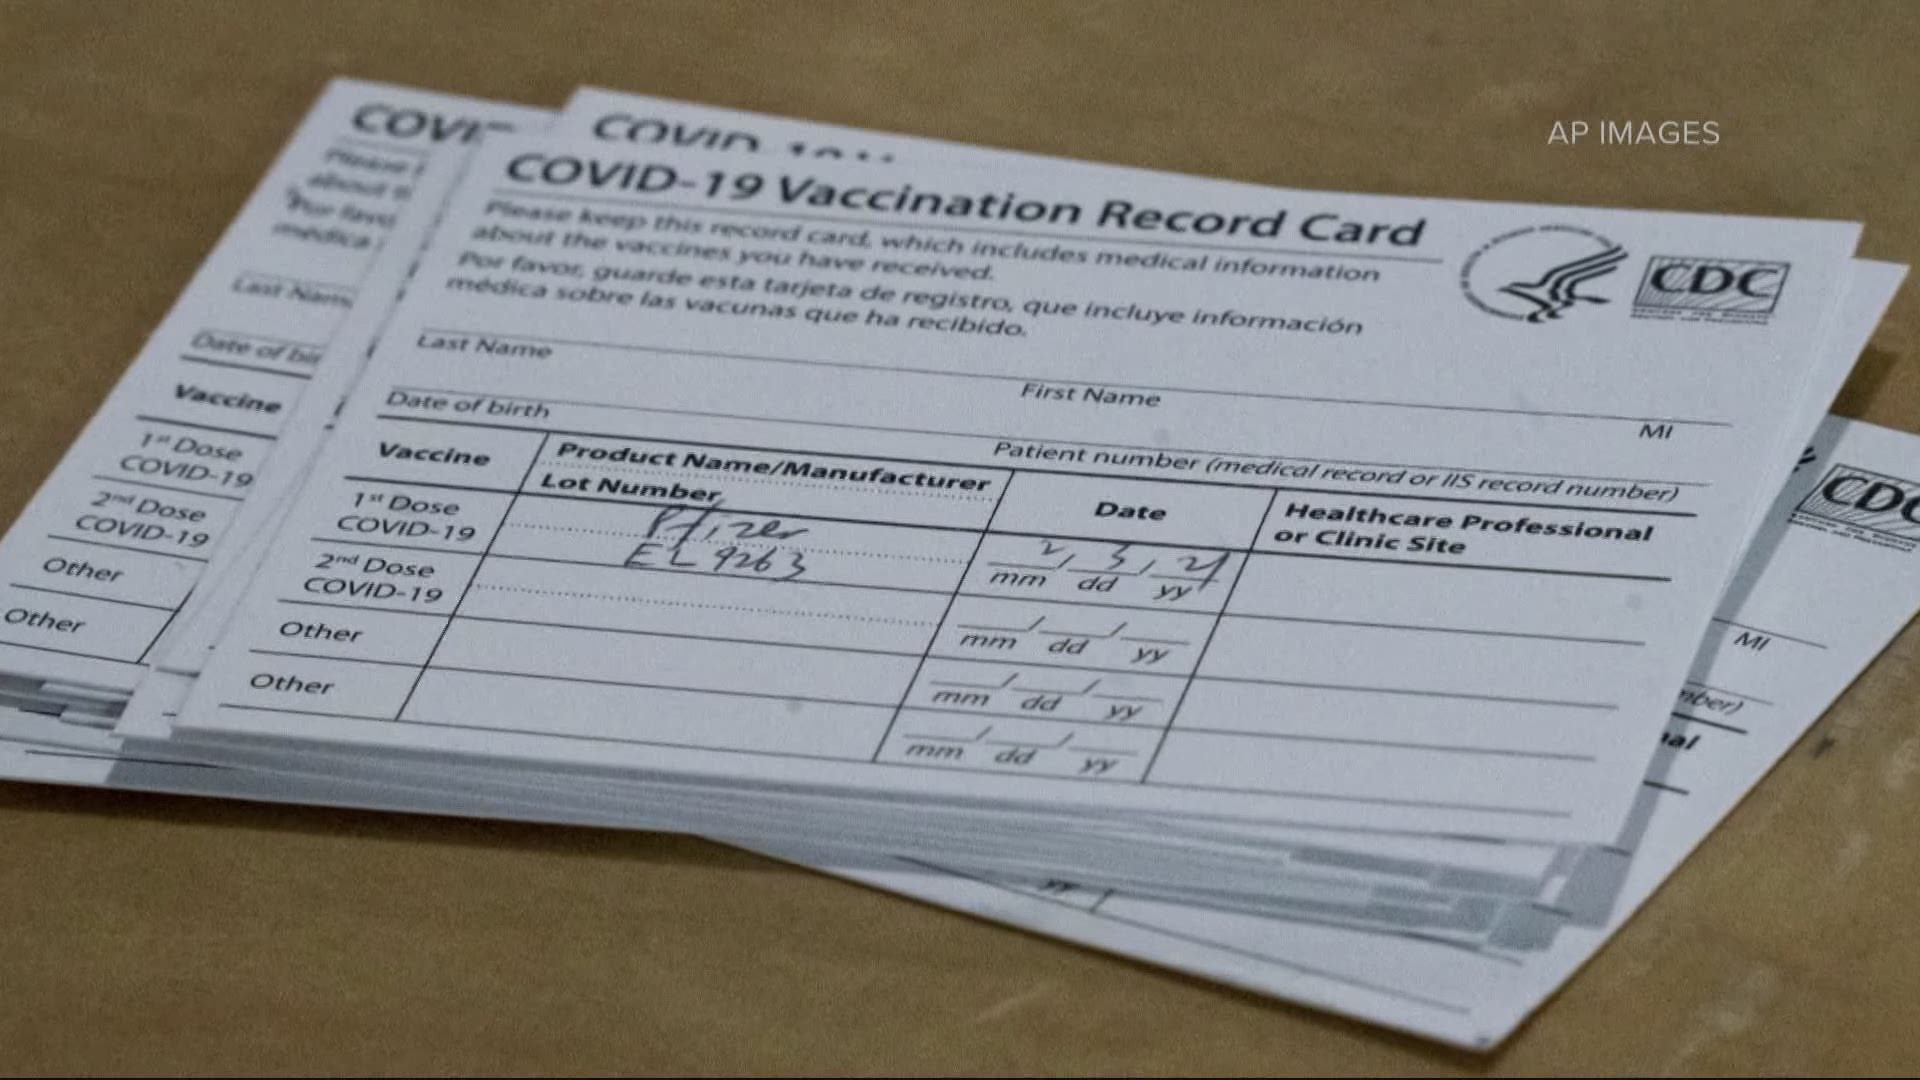 Your vaccination card